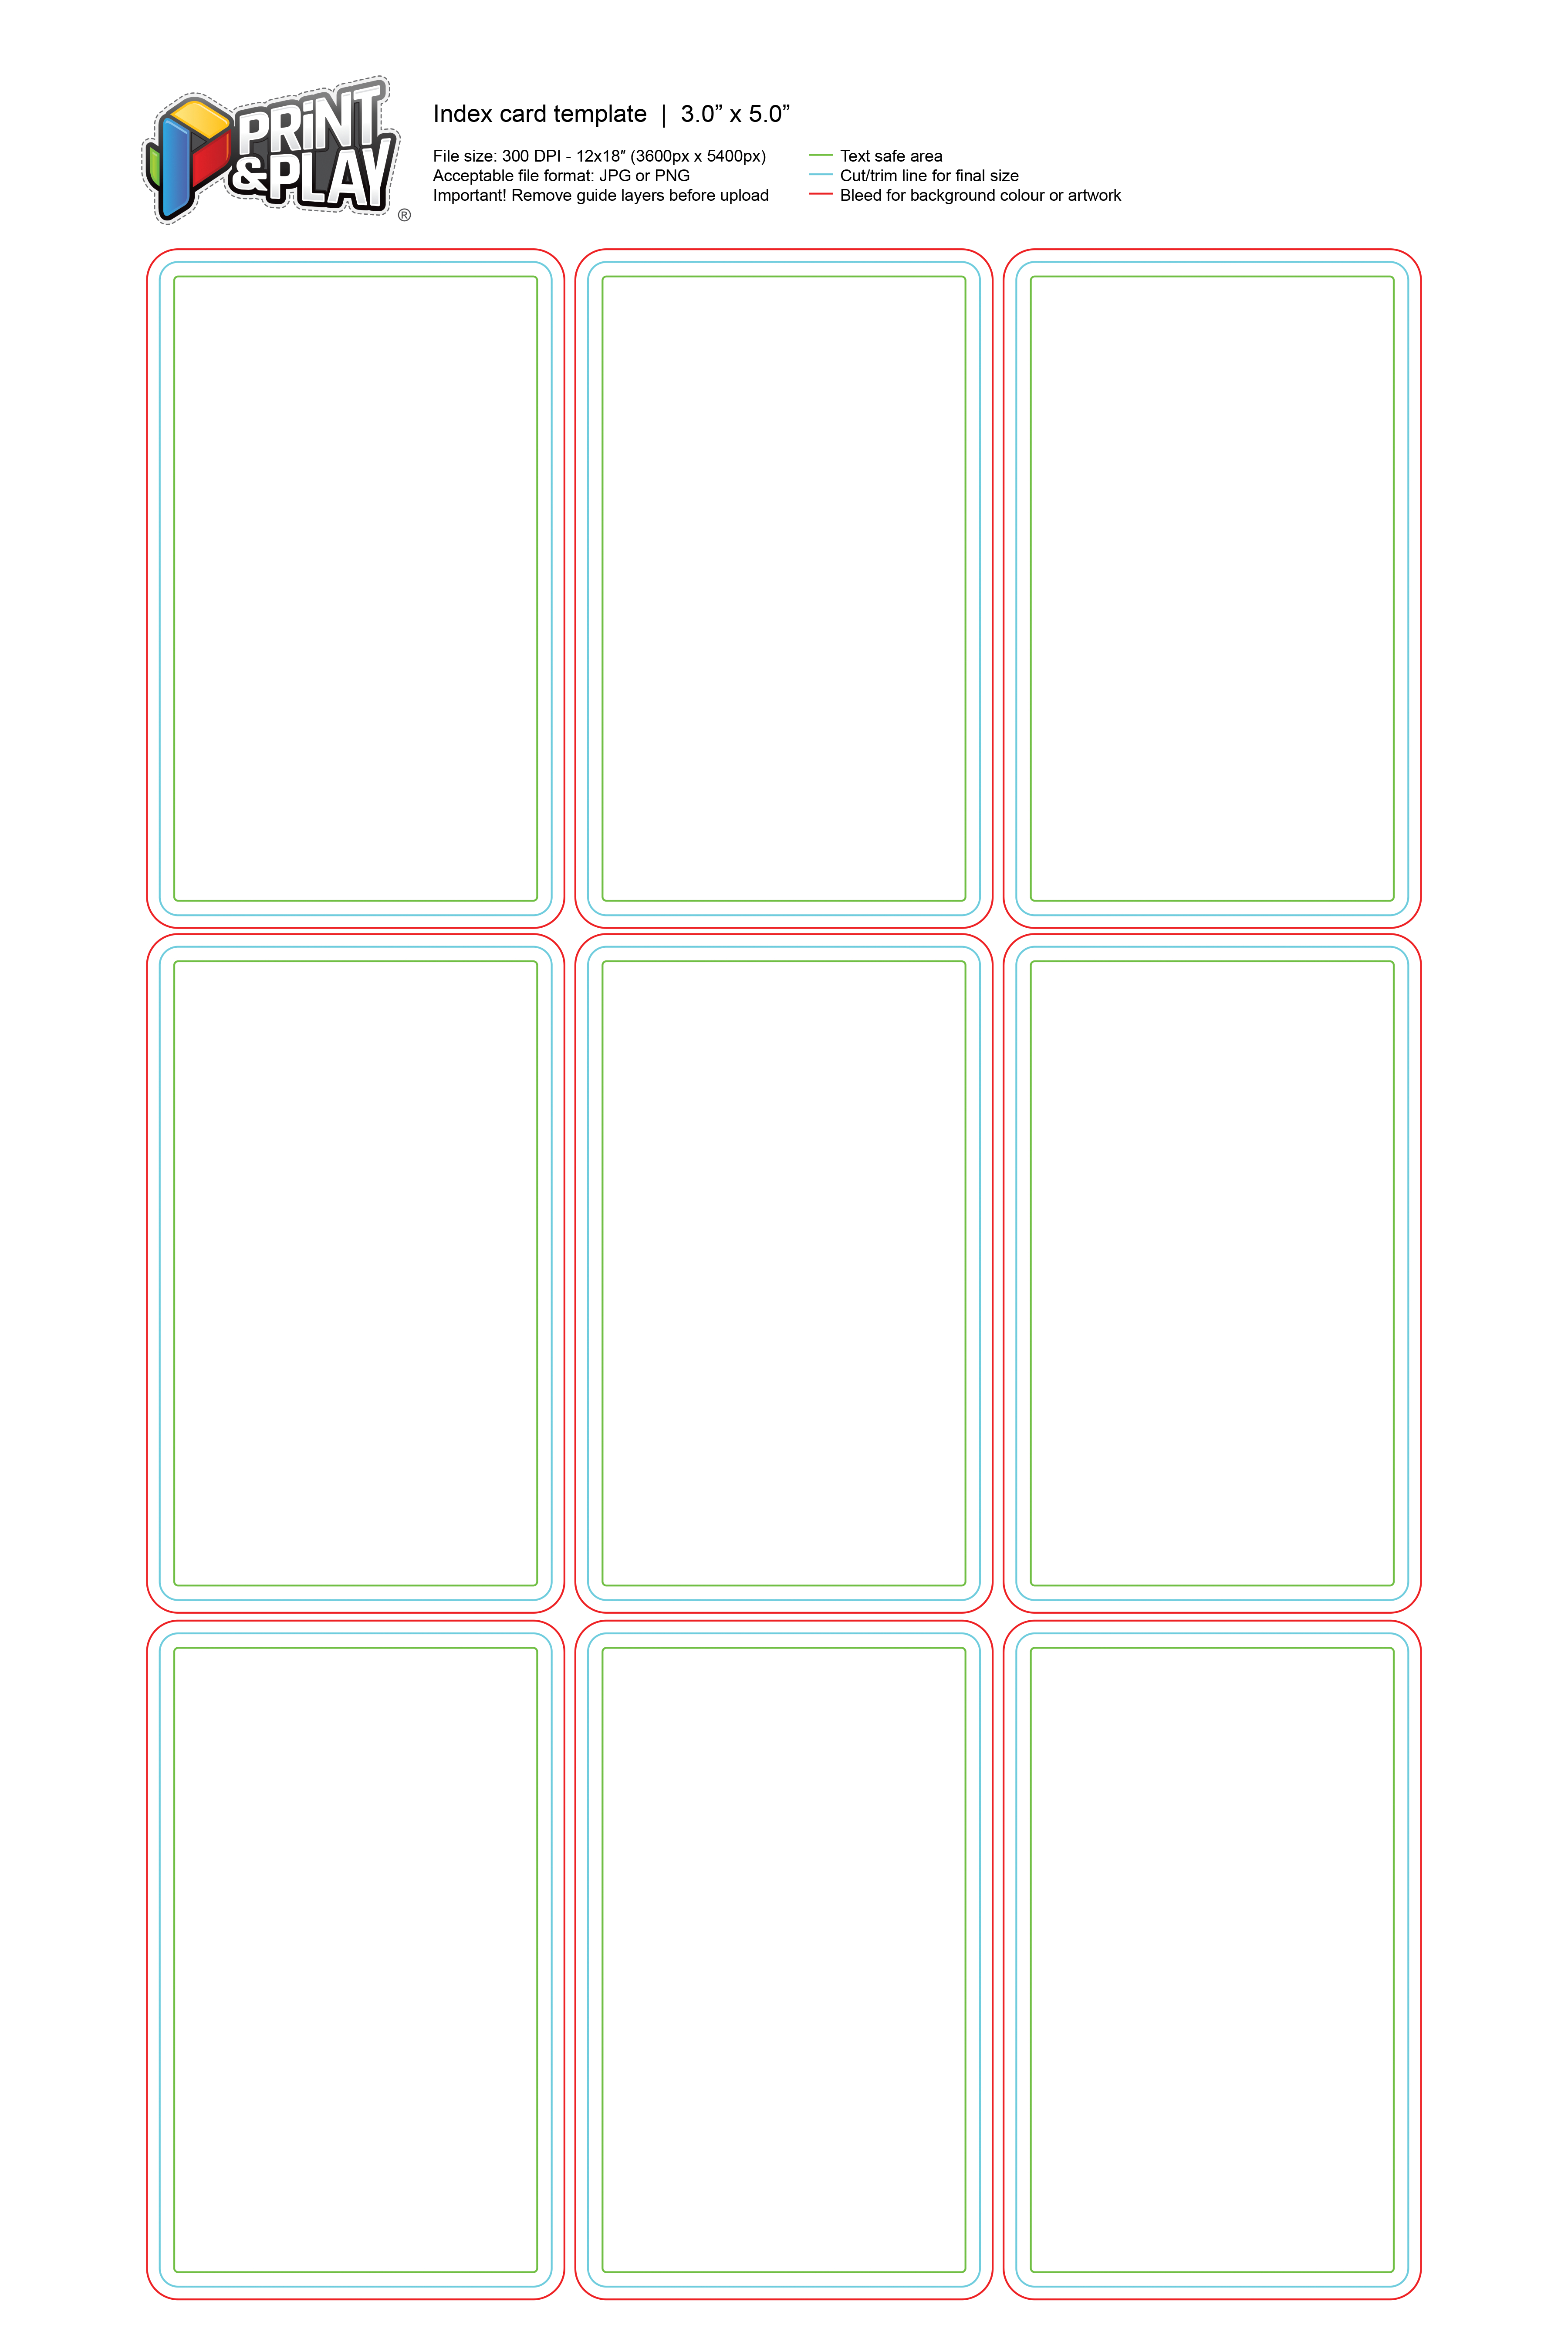 Playing Cards  Formatting  Templates  Print  Play Regarding Index Card Template For Pages